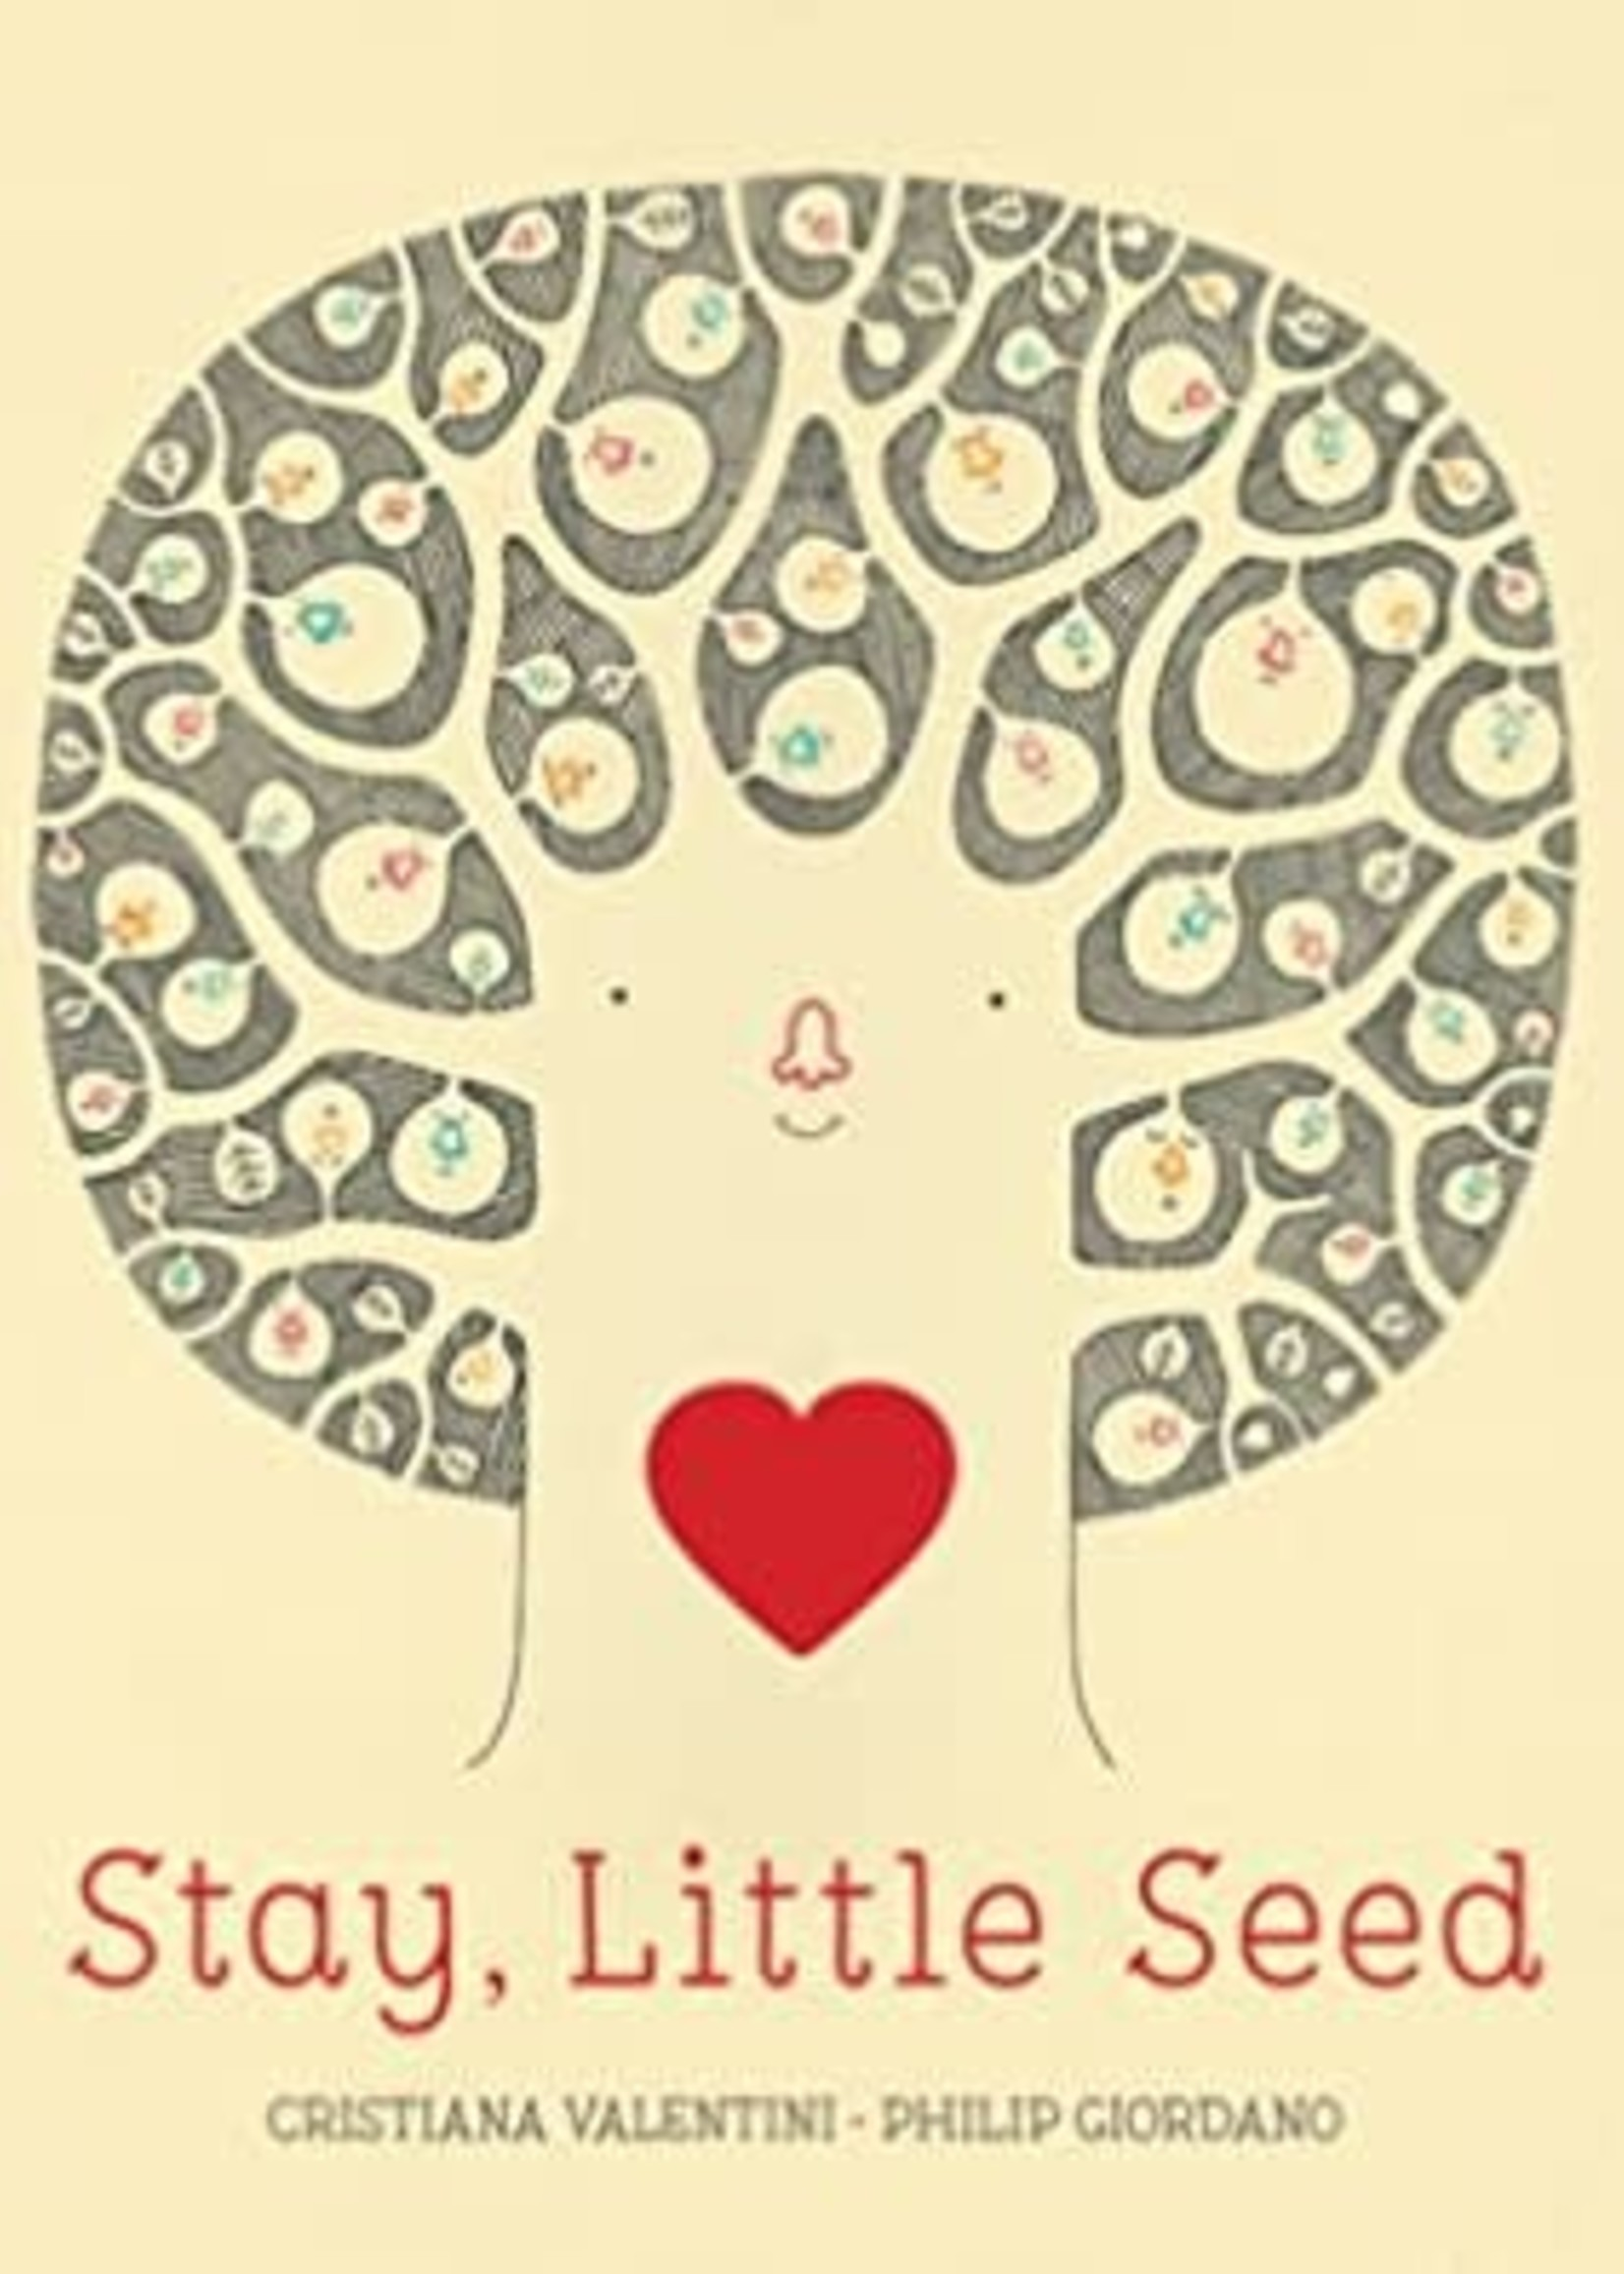 Stay, Little Seed by Cristiana Valentini, Philip Giordano